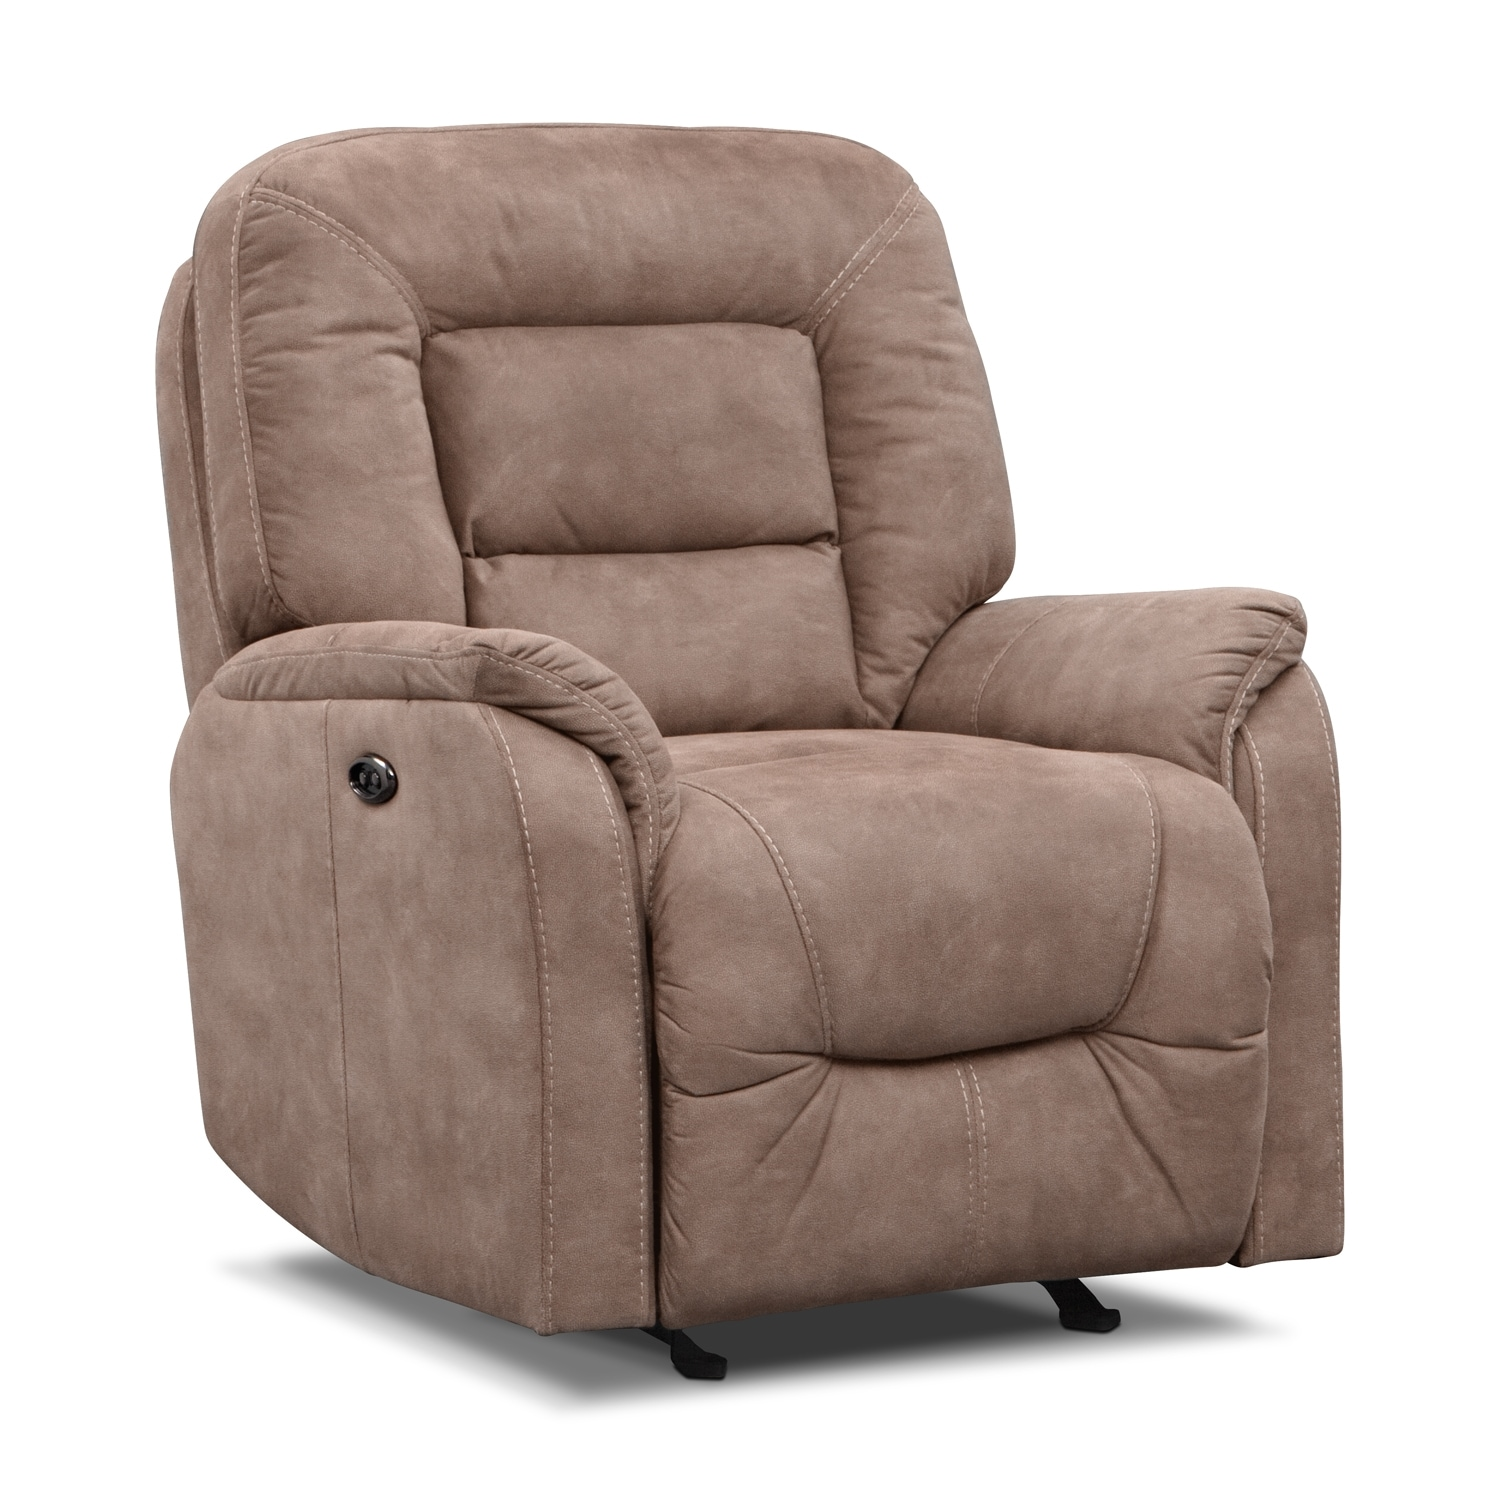 Living Room Furniture - Darien Power Glider Recliner - Taupe